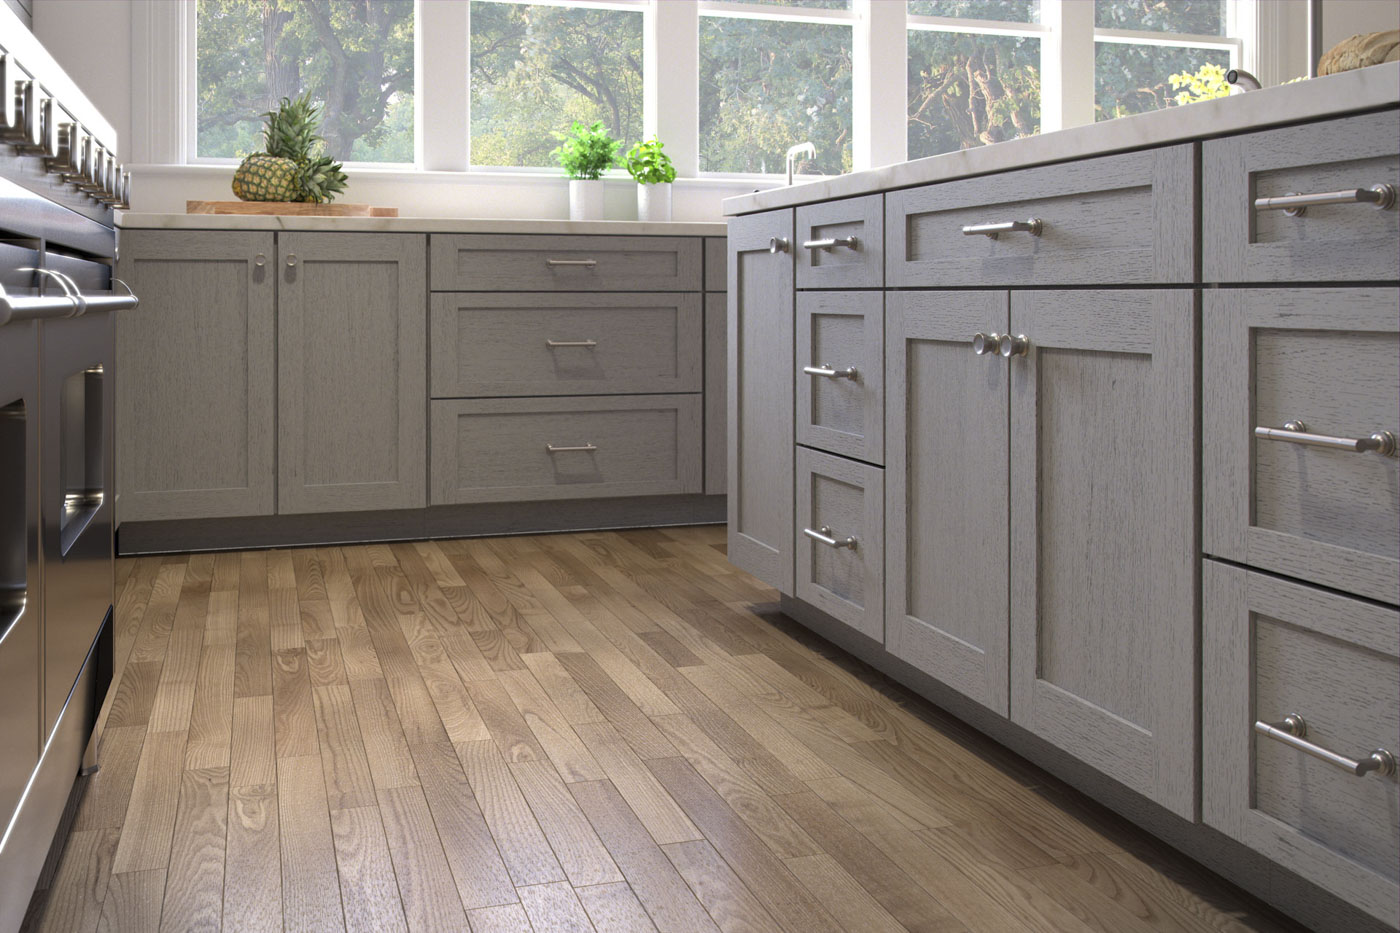 Kitchen Cabinets Solid Wood Construction Arcadia Grey Shaker Kitchen Cabinets